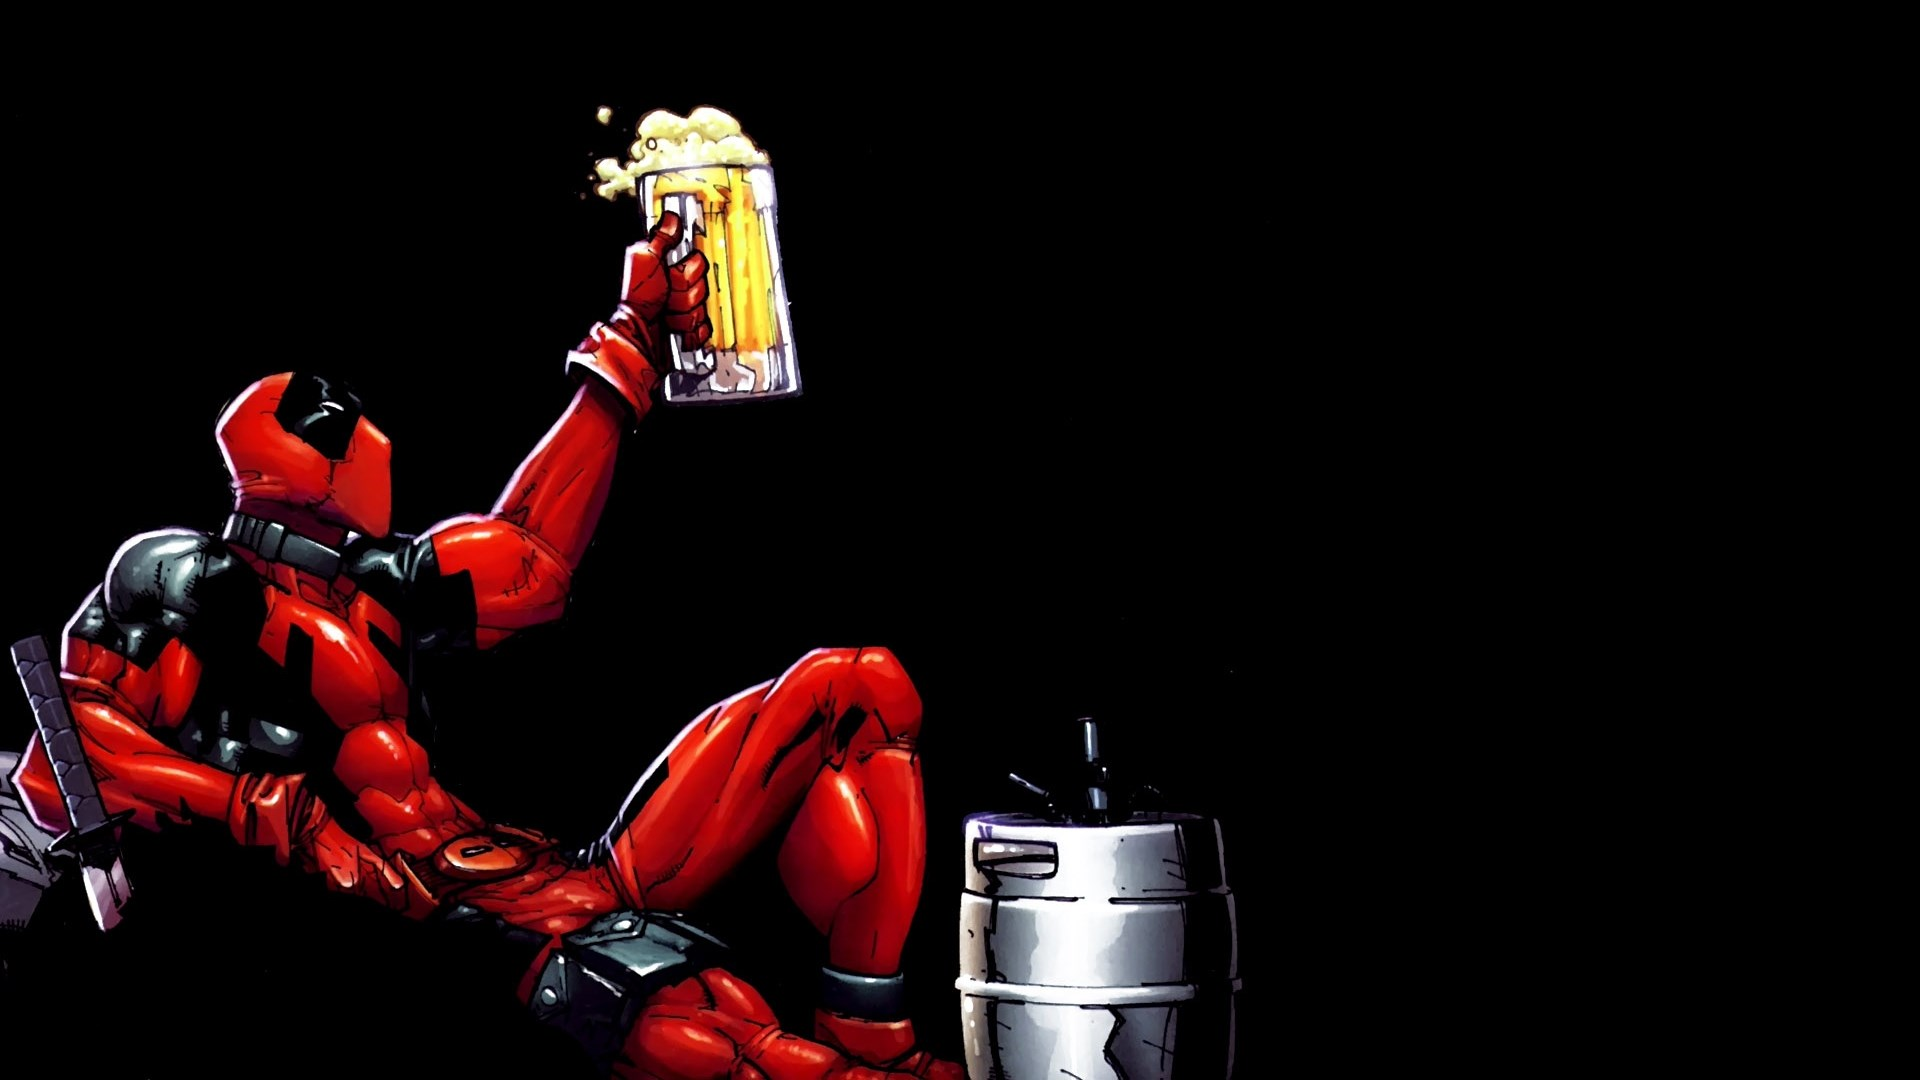 1920x1080-images-deadpool-wallpaper-wpc5801004